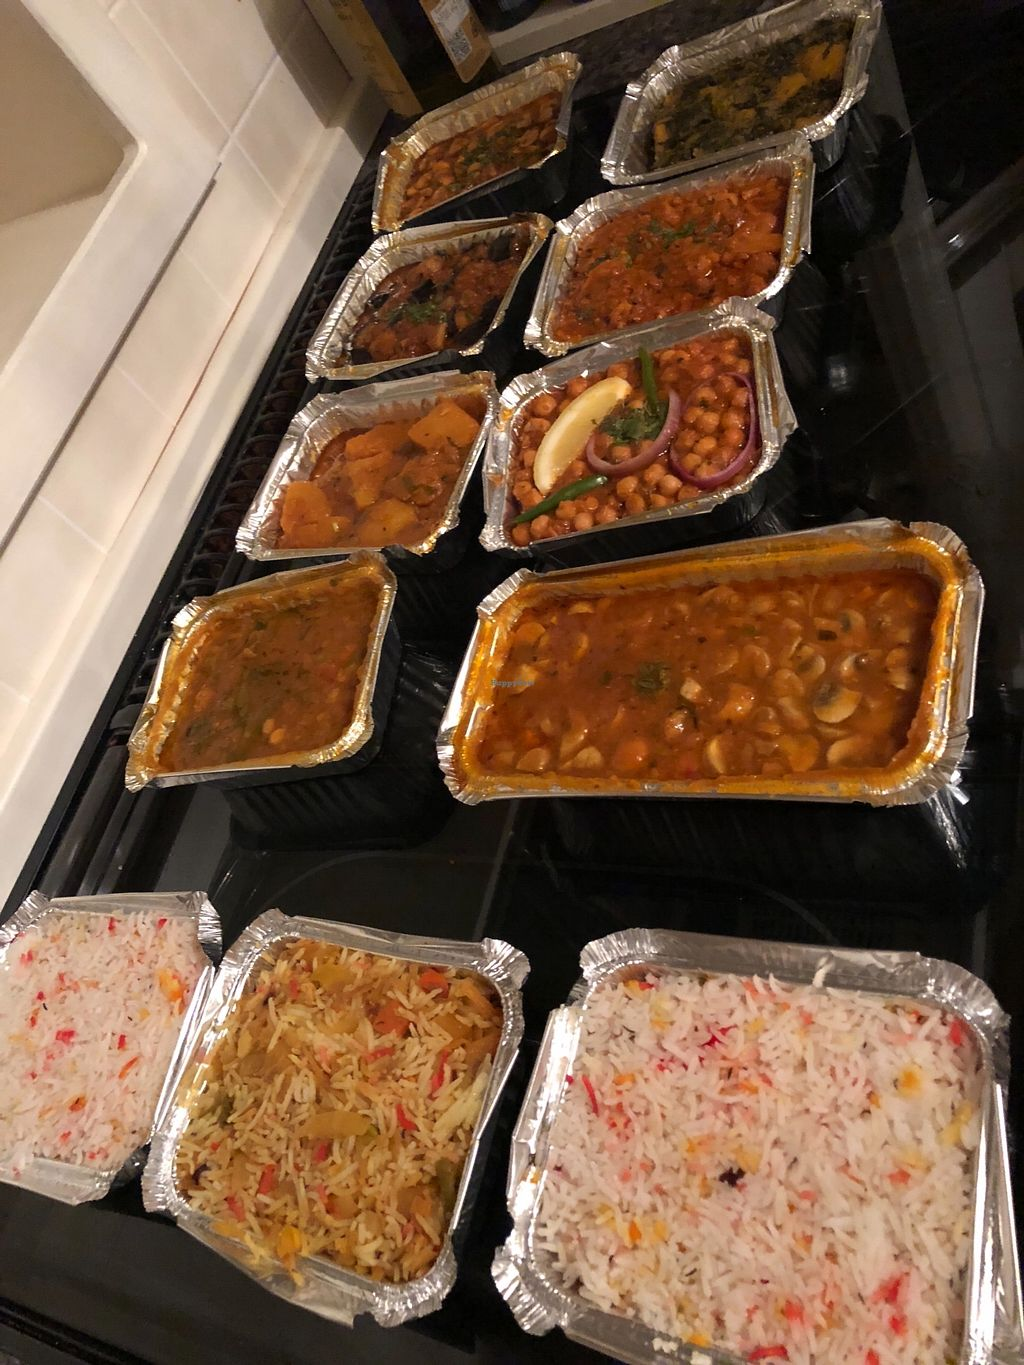 """Photo of Curry Queen  by <a href=""""/members/profile/TARAMCDONALD"""">TARAMCDONALD</a> <br/>Delicious takeaway of vegan dishes  <br/> March 23, 2018  - <a href='/contact/abuse/image/112614/375013'>Report</a>"""